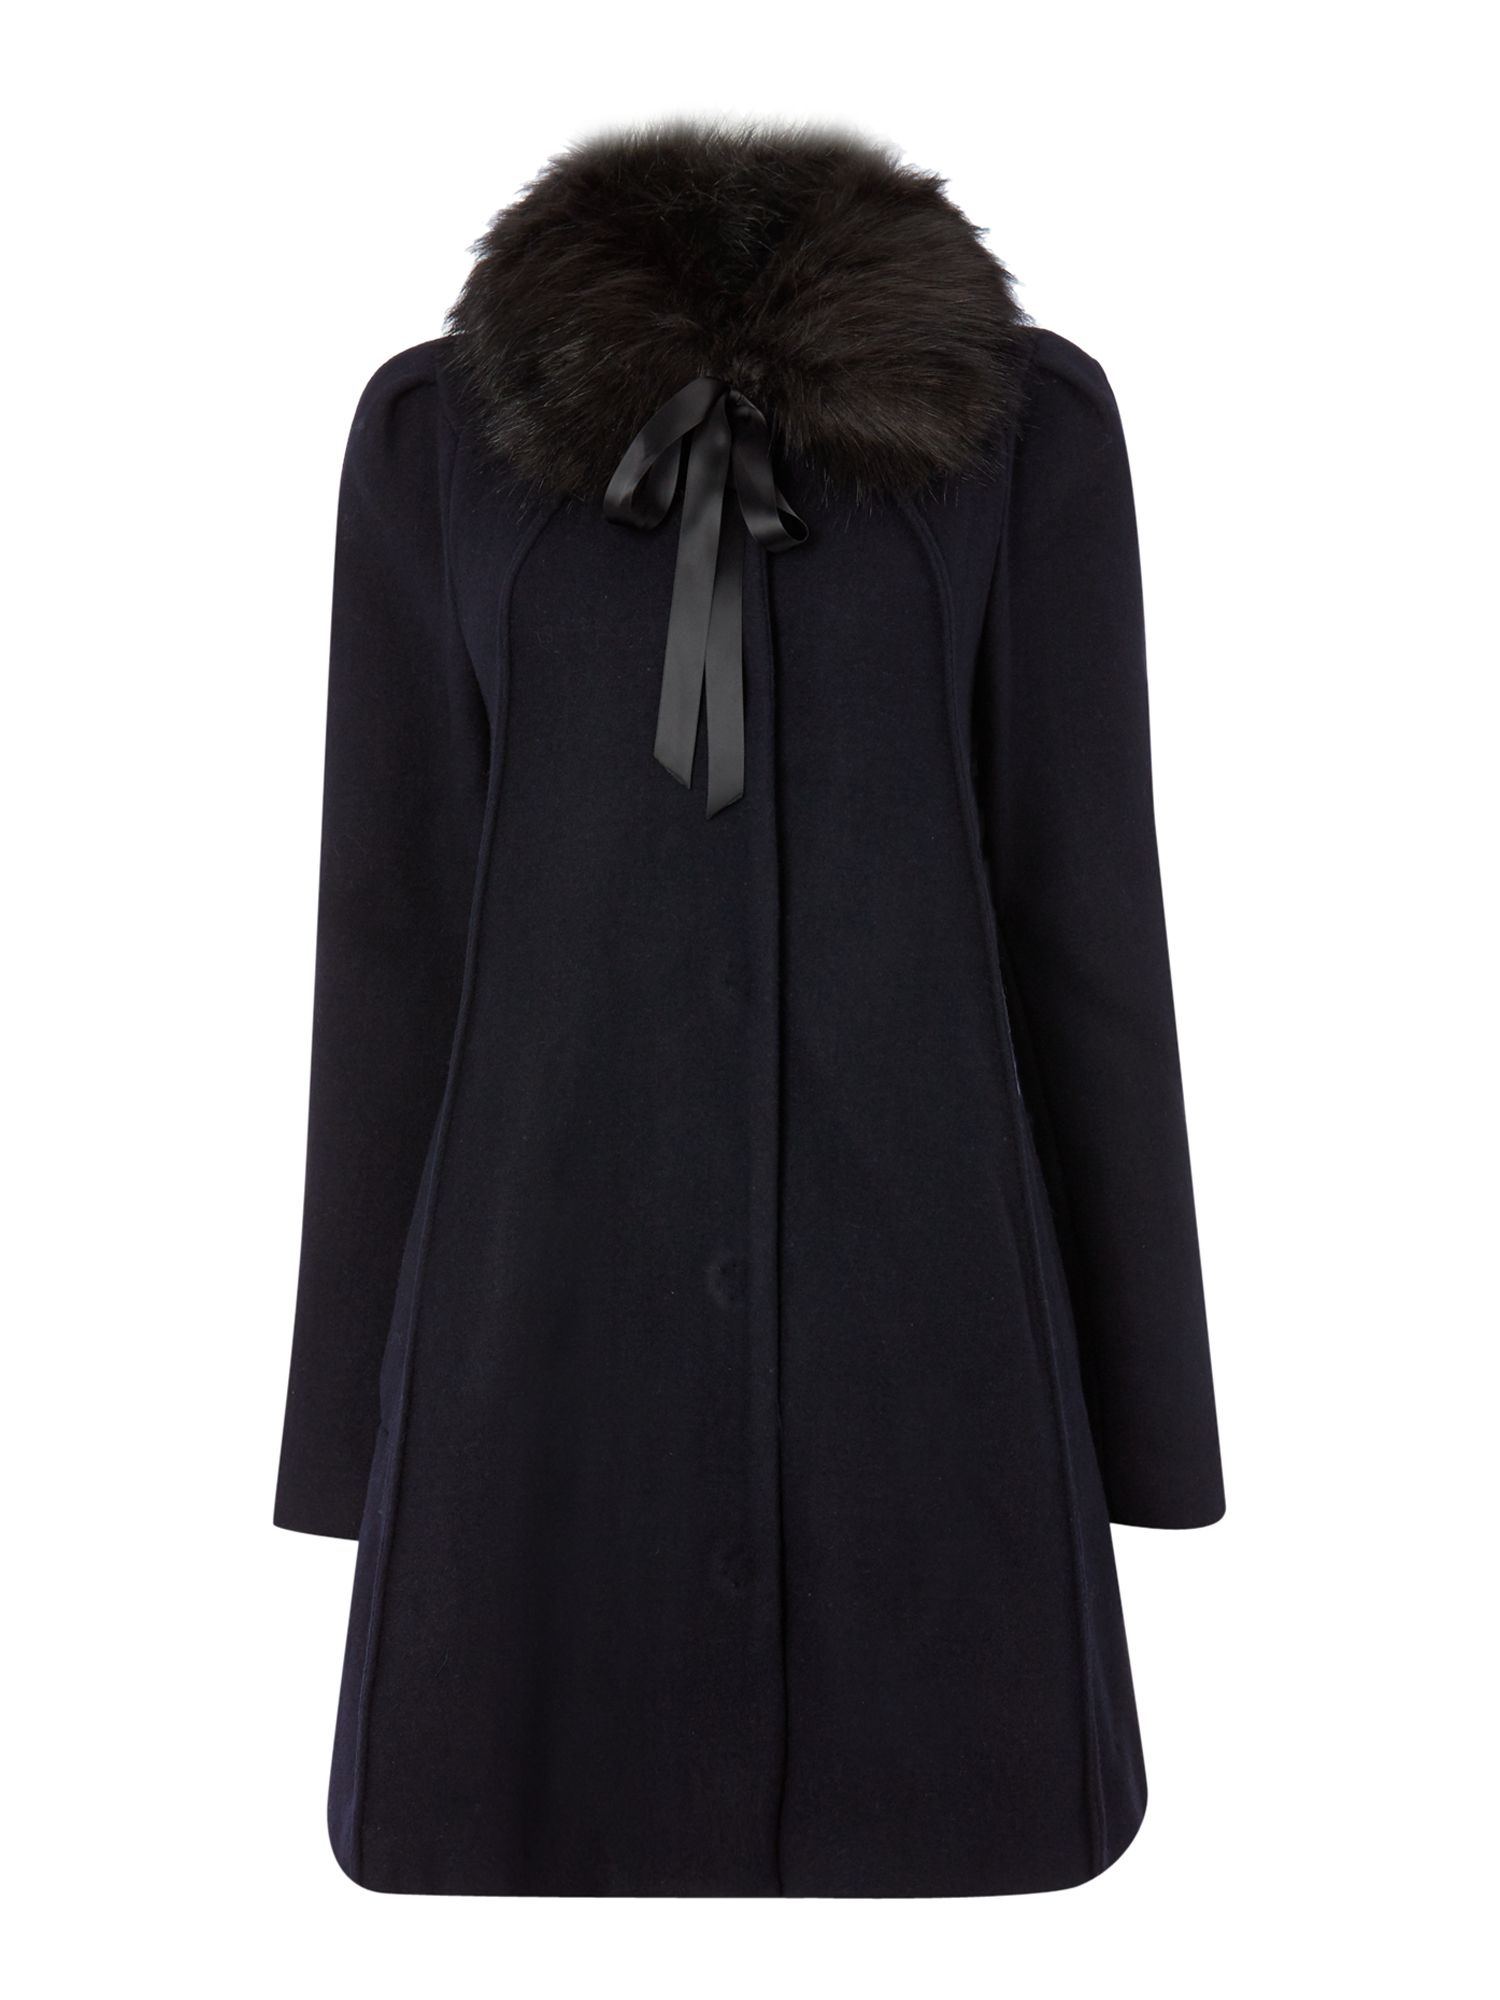 Therapy Fur collar swing coat $79.00 AT vintagedancer.com